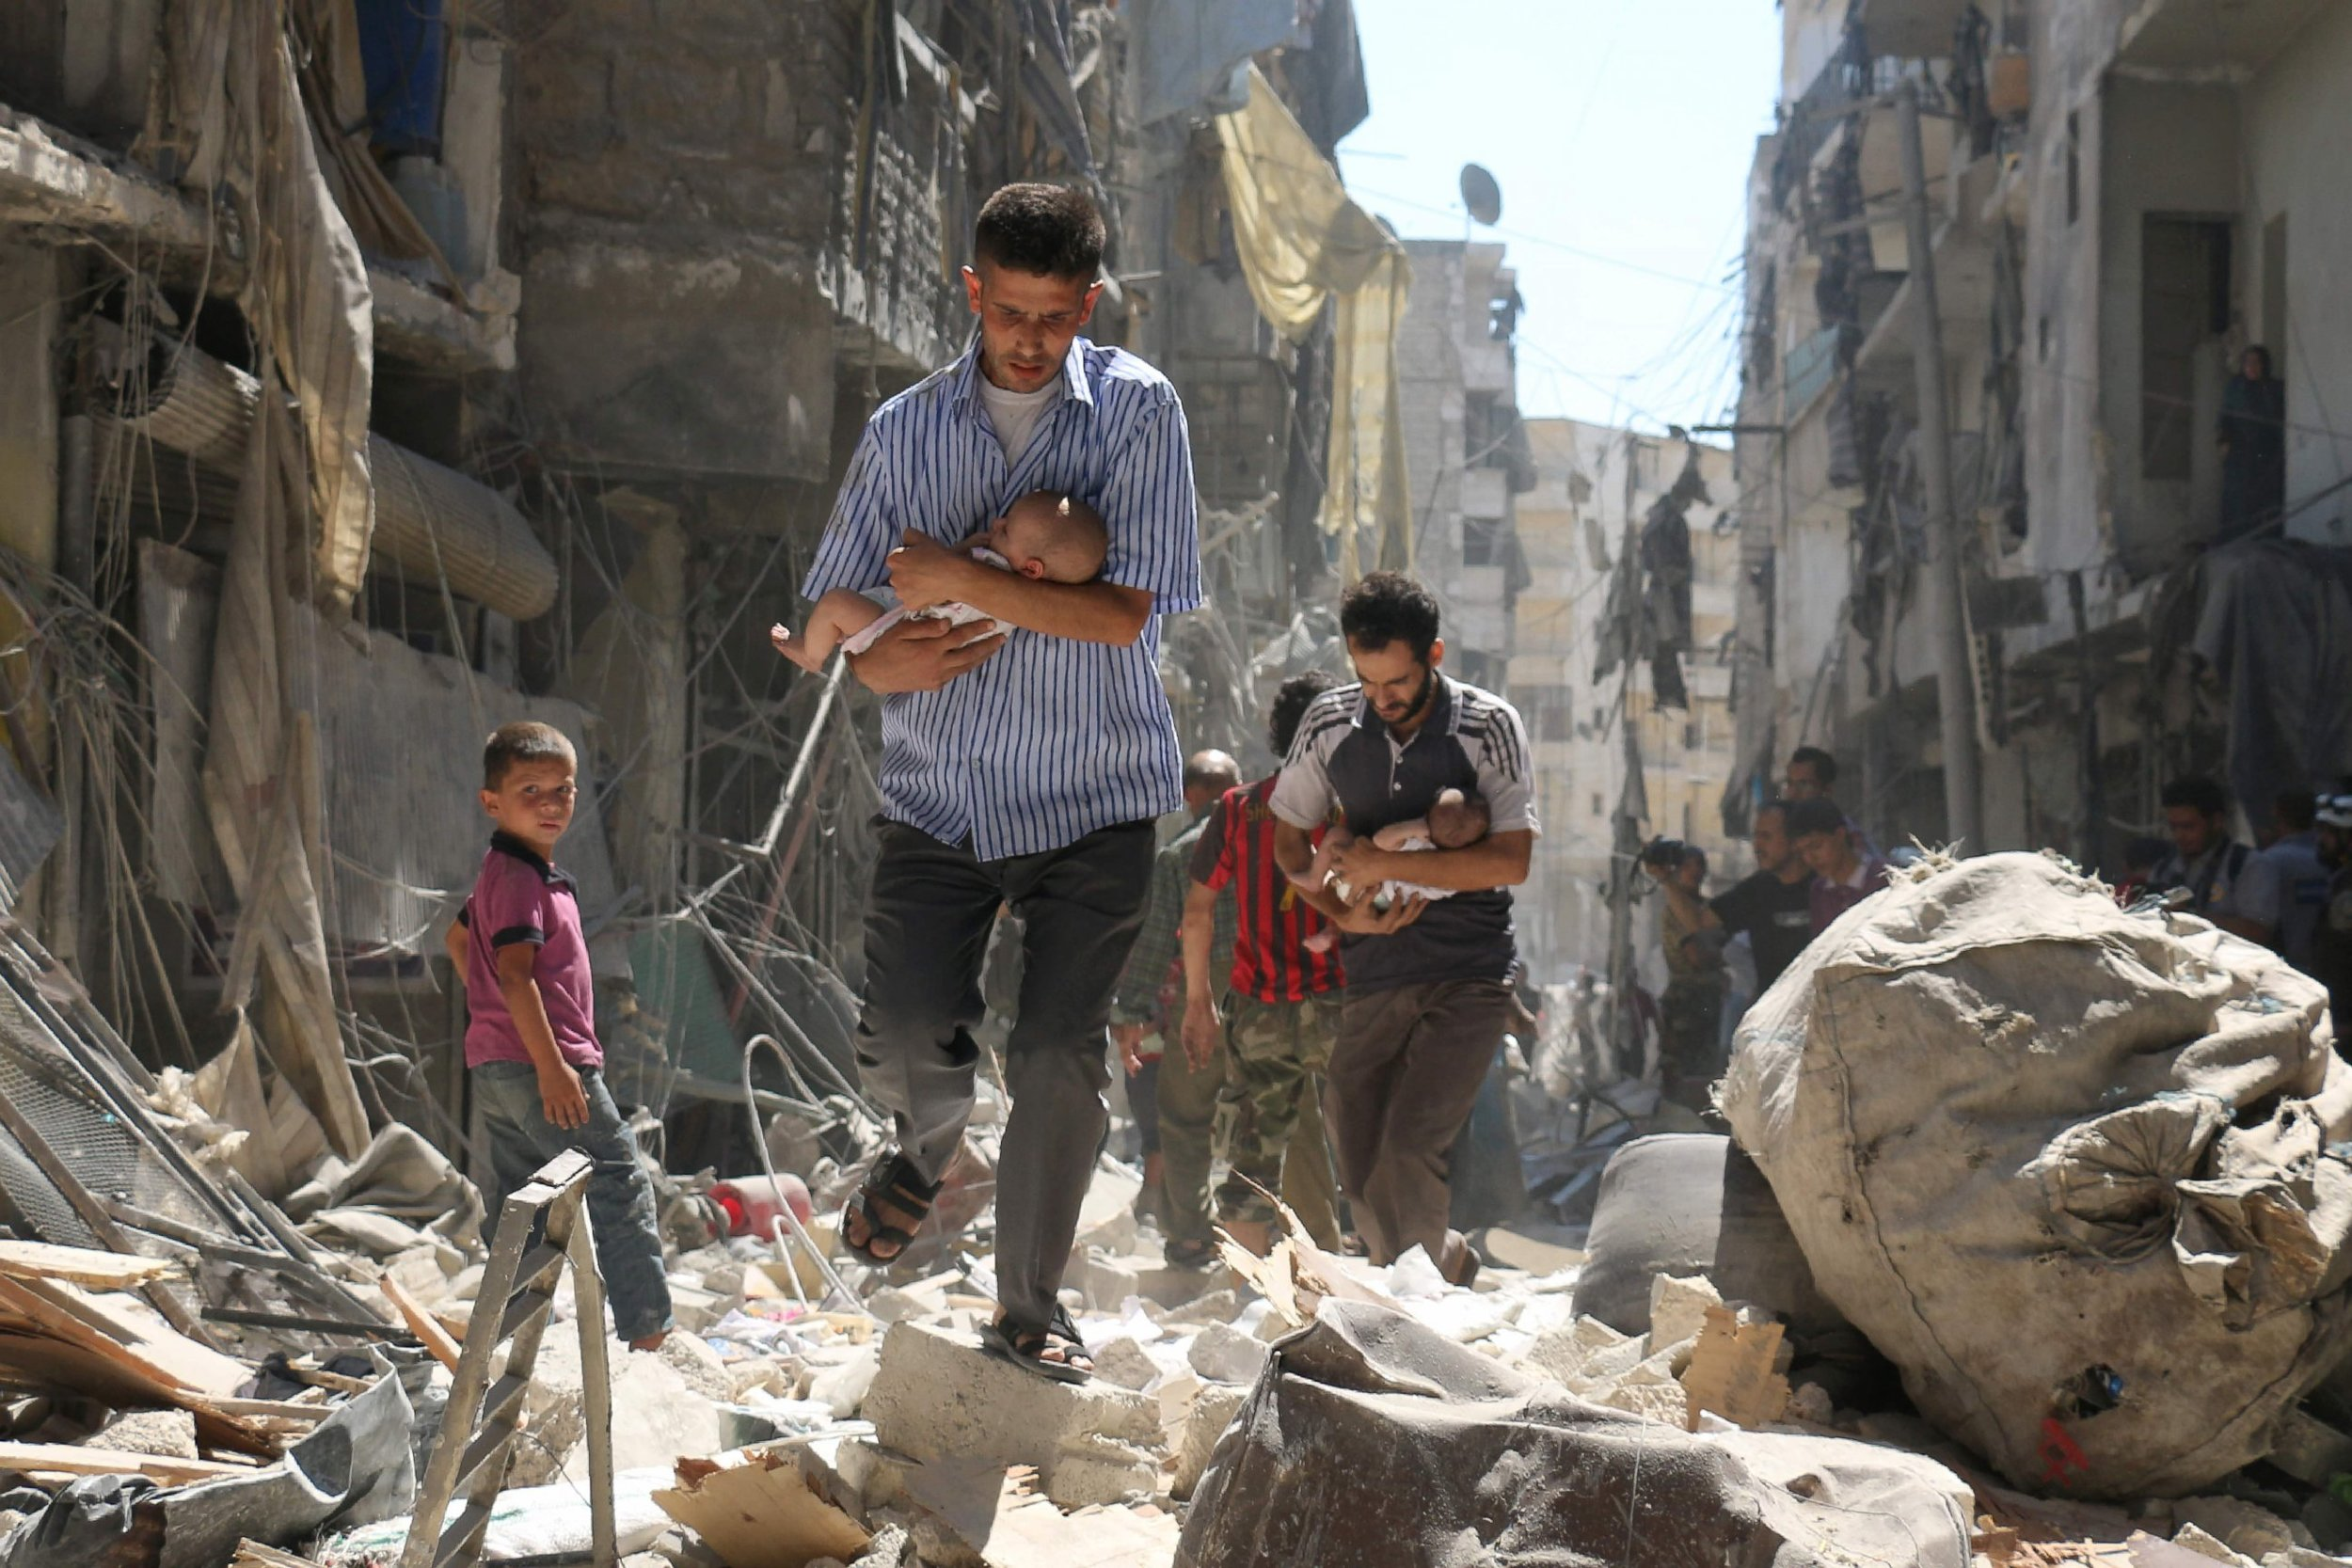 Aleppo, Syria. Photo courtesy of ABC News.